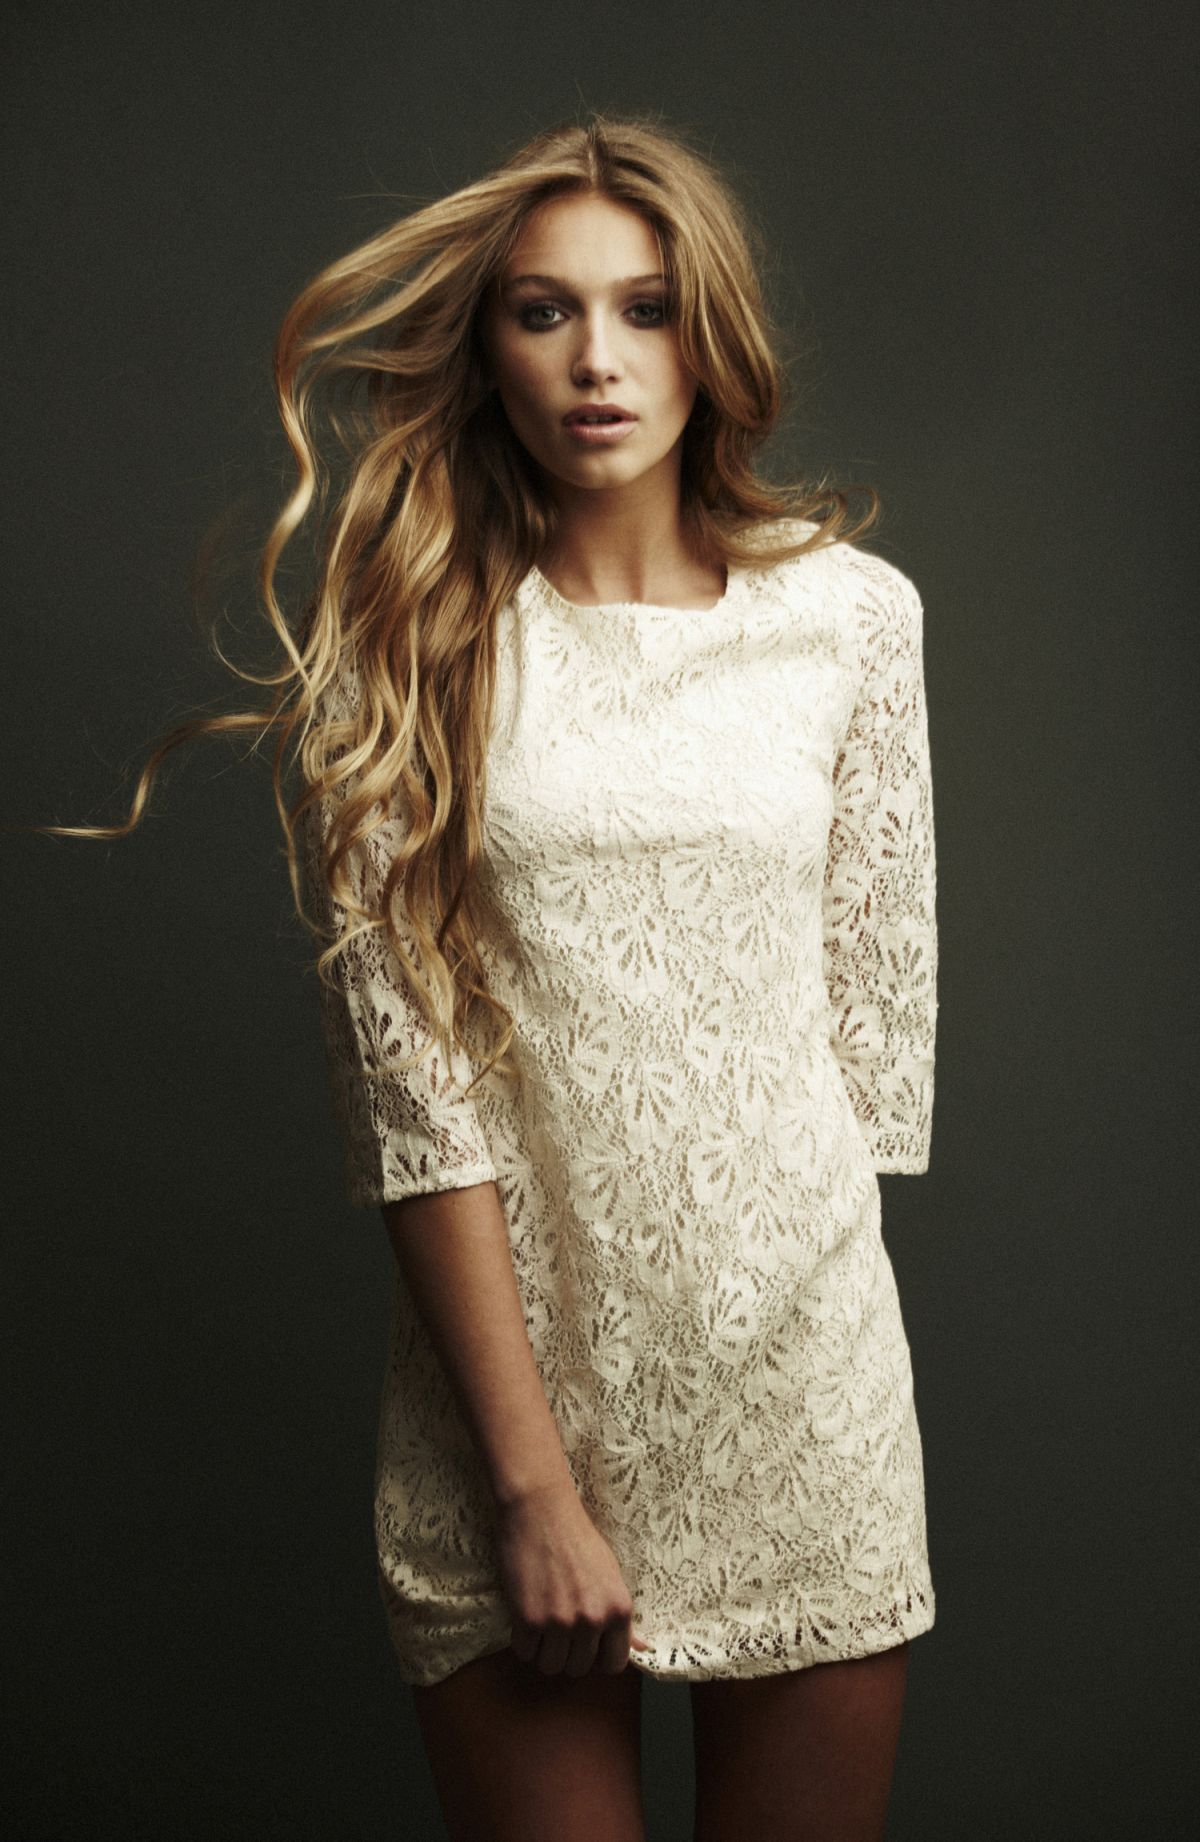 Cailin Russo At Trever Hoehne Photoshoot 2014